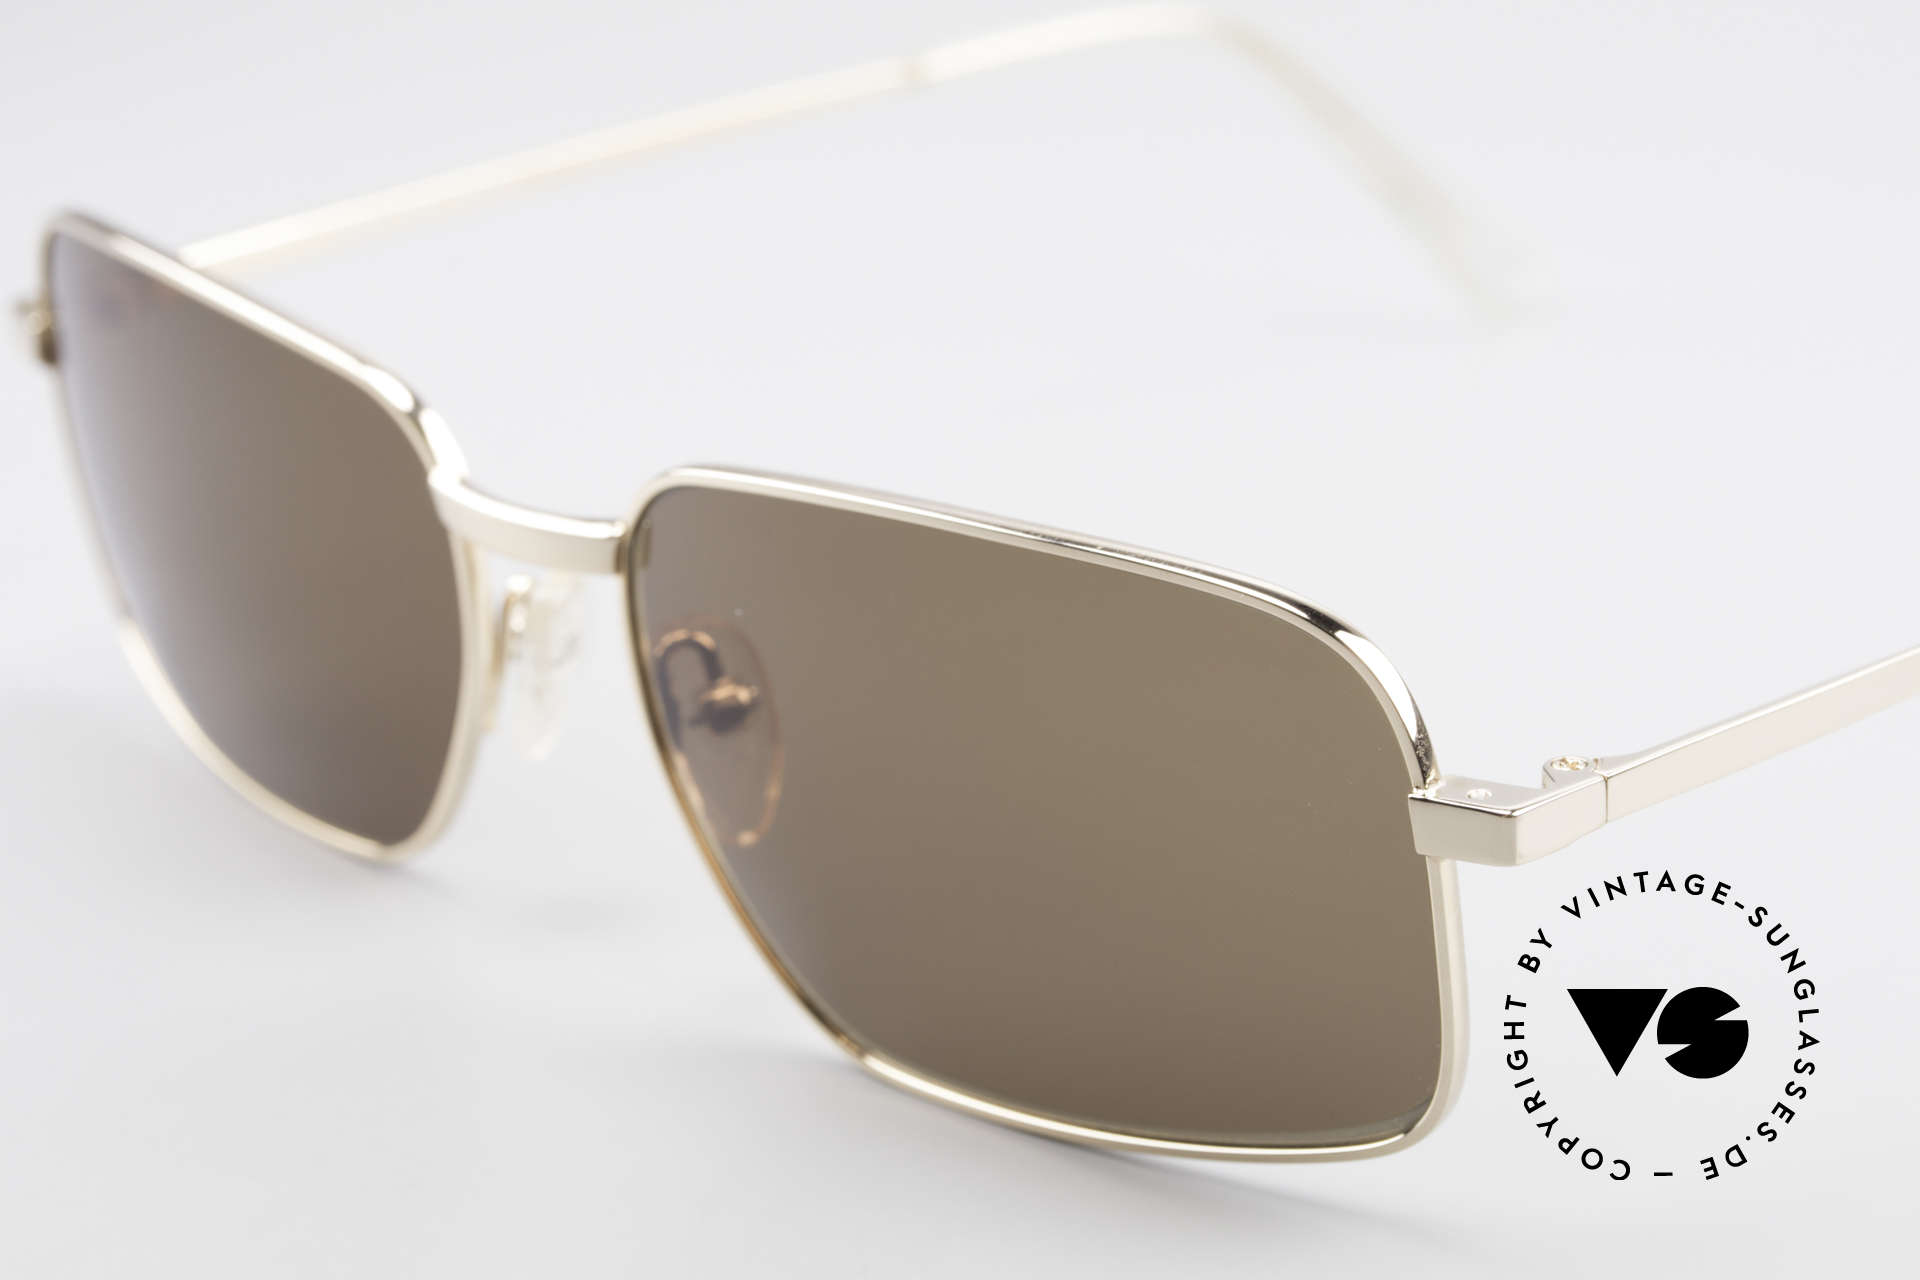 Helmut Lang SHL62A Stylish Titanium Sunglasses, top-notch quality & very pleasant to wear; lightweight, Made for Men